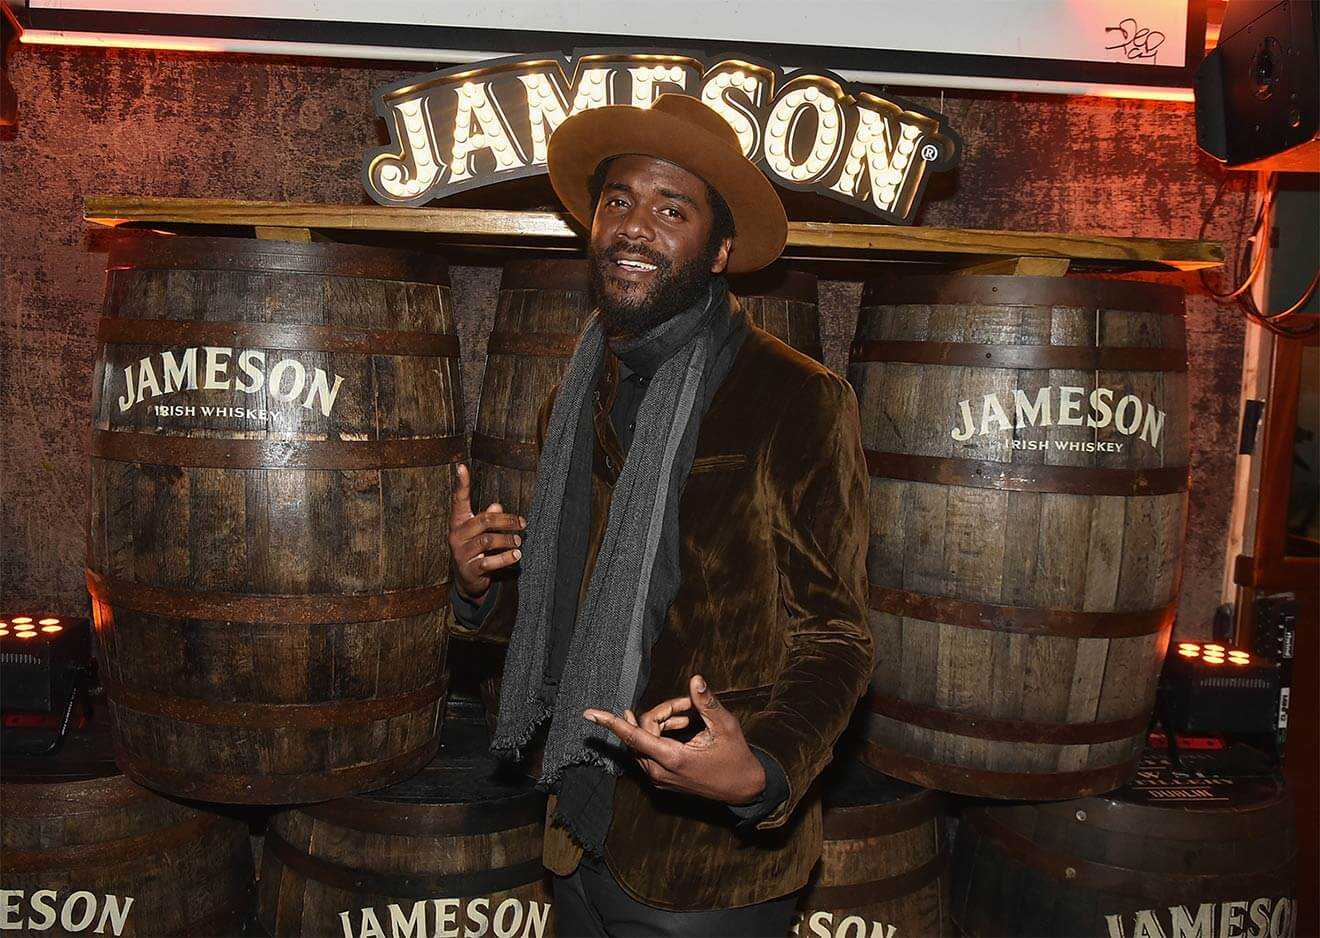 Grammy-Award-winner-Gary-Clark-Jr-celebrates-the-launch-of-Jameson-Music-with-a-special-performance-by-The-London-Souls-at-Pianos-in-NYC